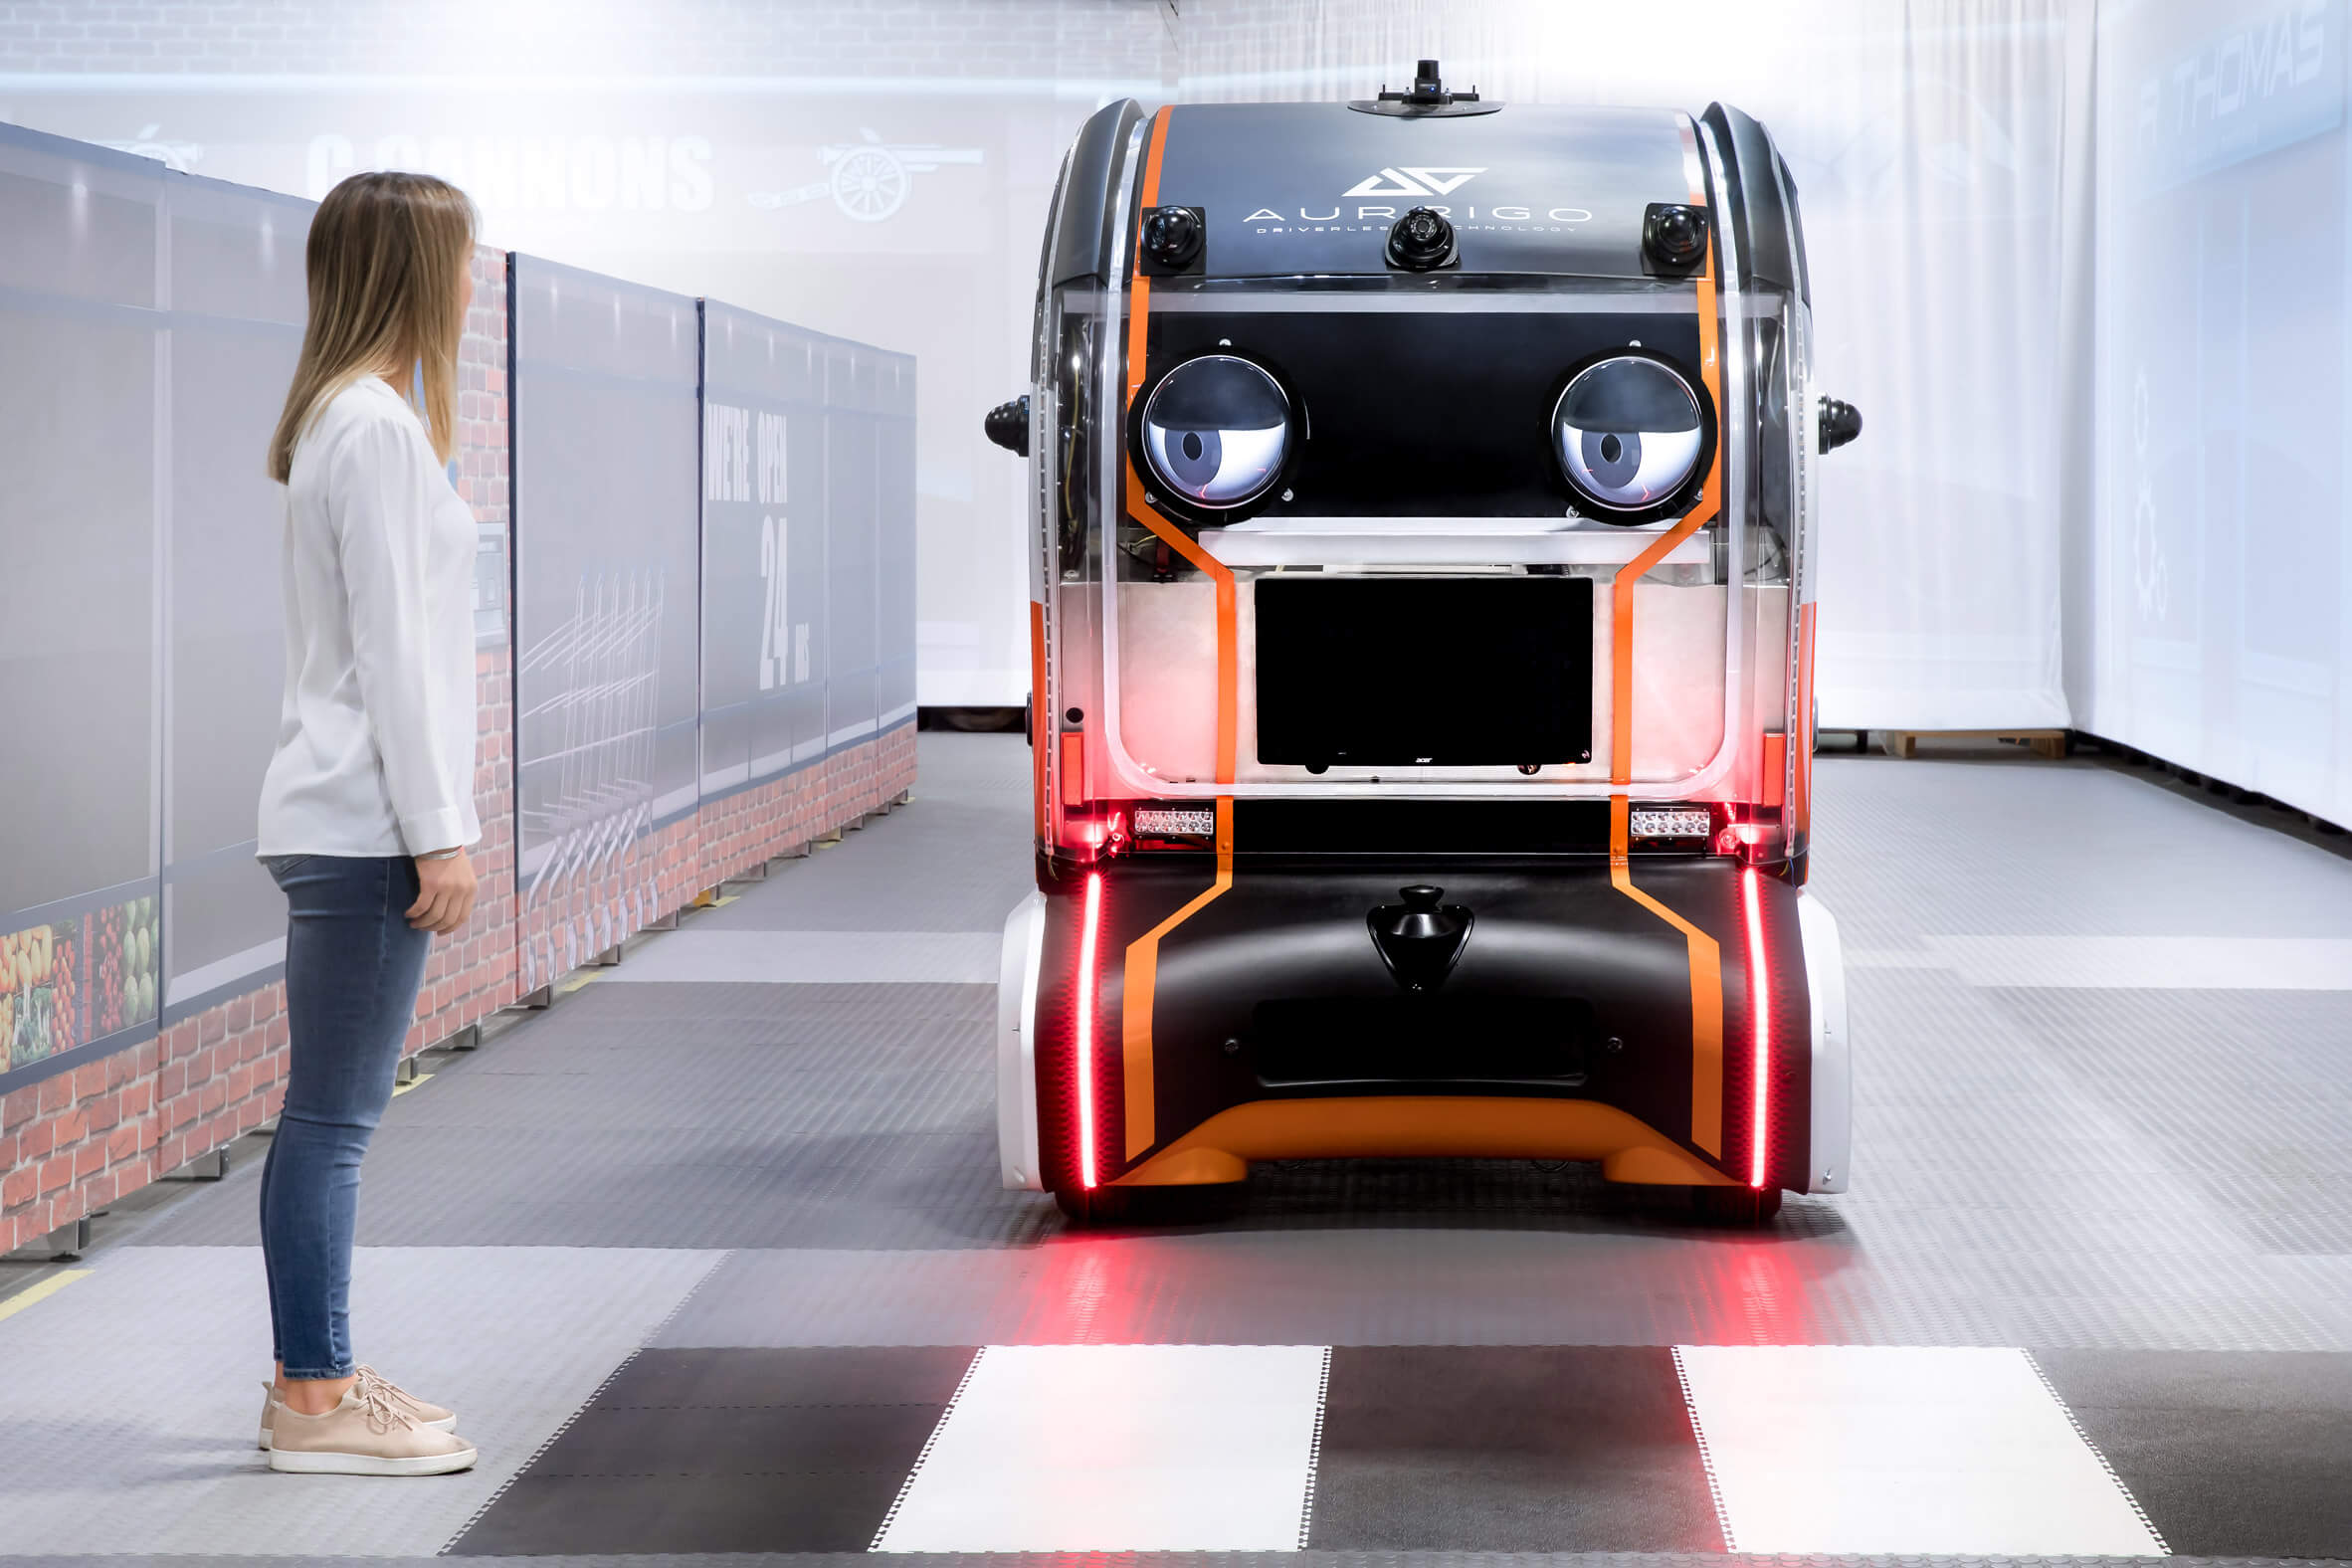 self-driving car from Jaguar Land Rover